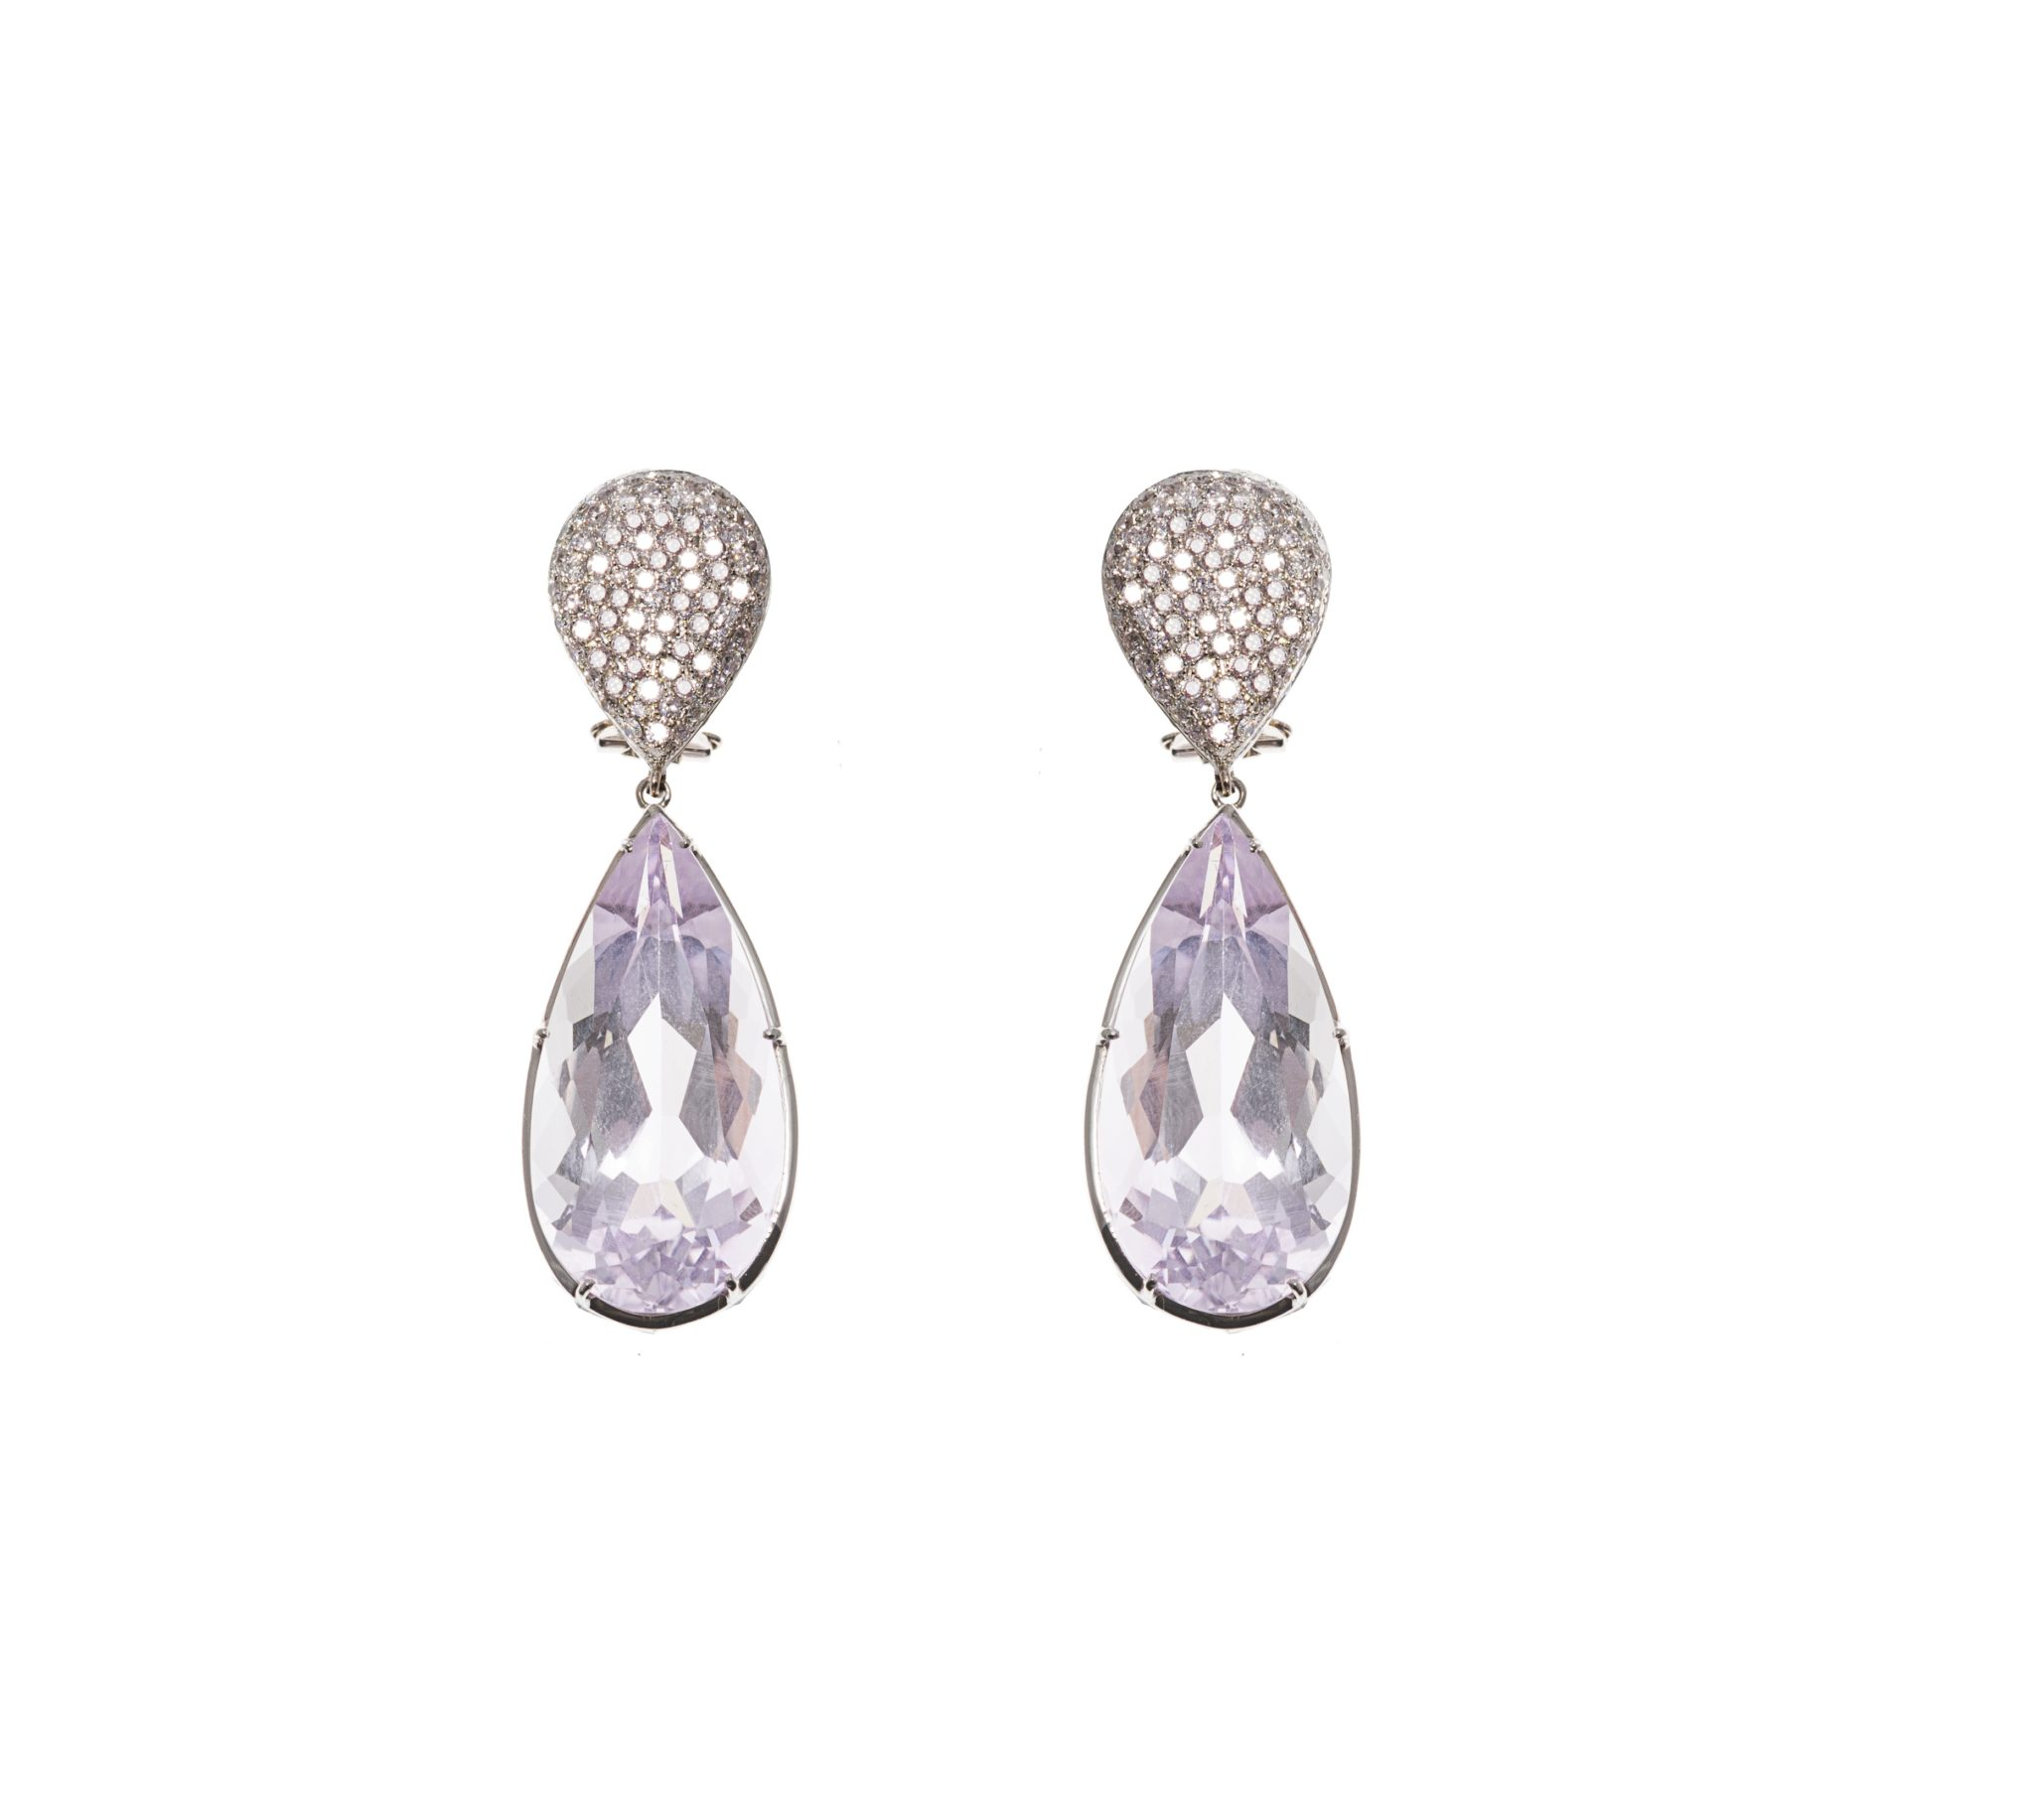 Gold earrings with pavé diamonds and drop pink amethysts